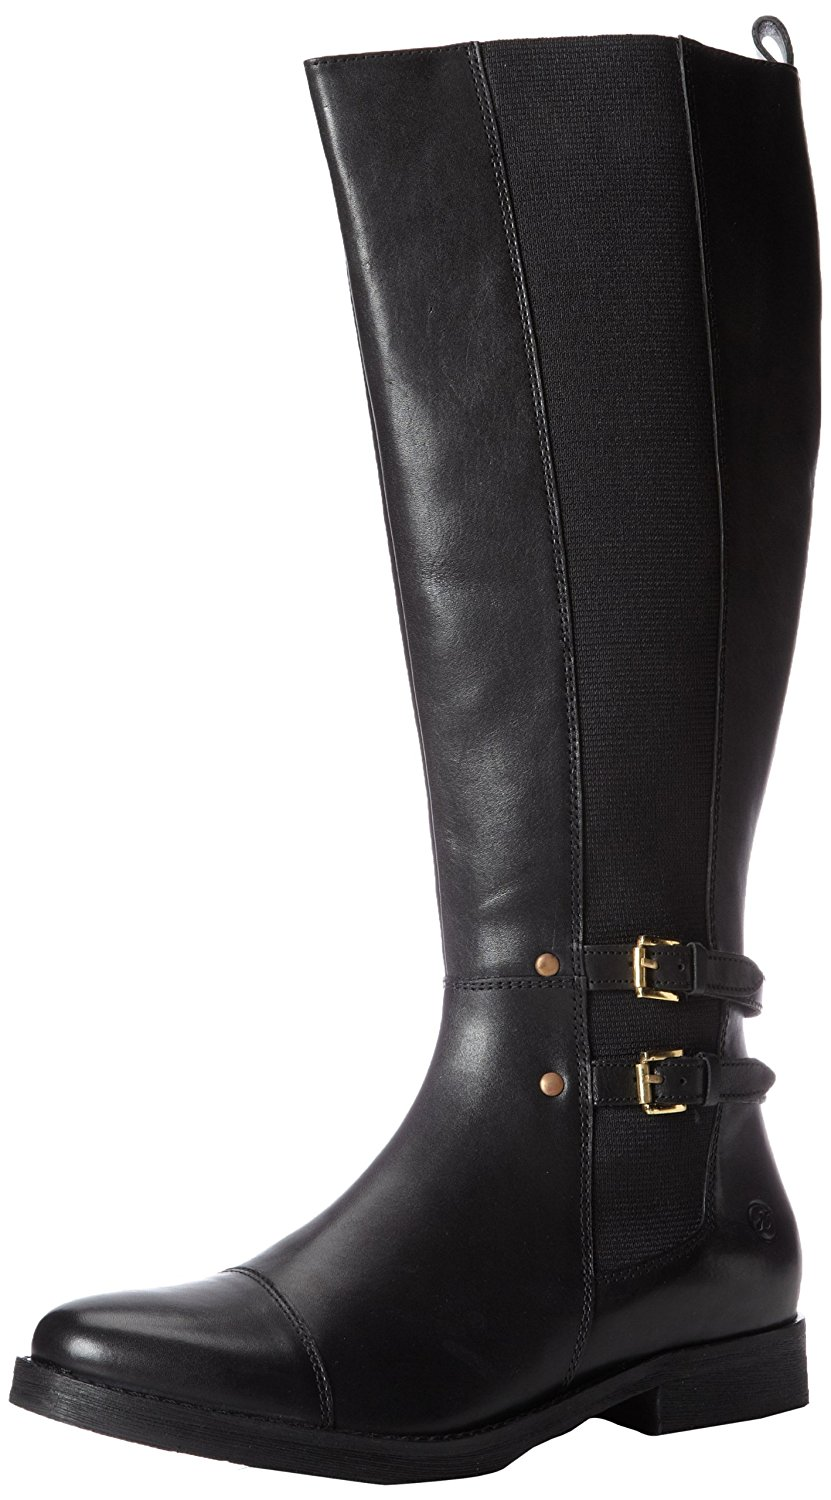 Bronx By Diba True Women's Loop Hole Tall Leather Boots Black (41.0 EU   11.0M US) by